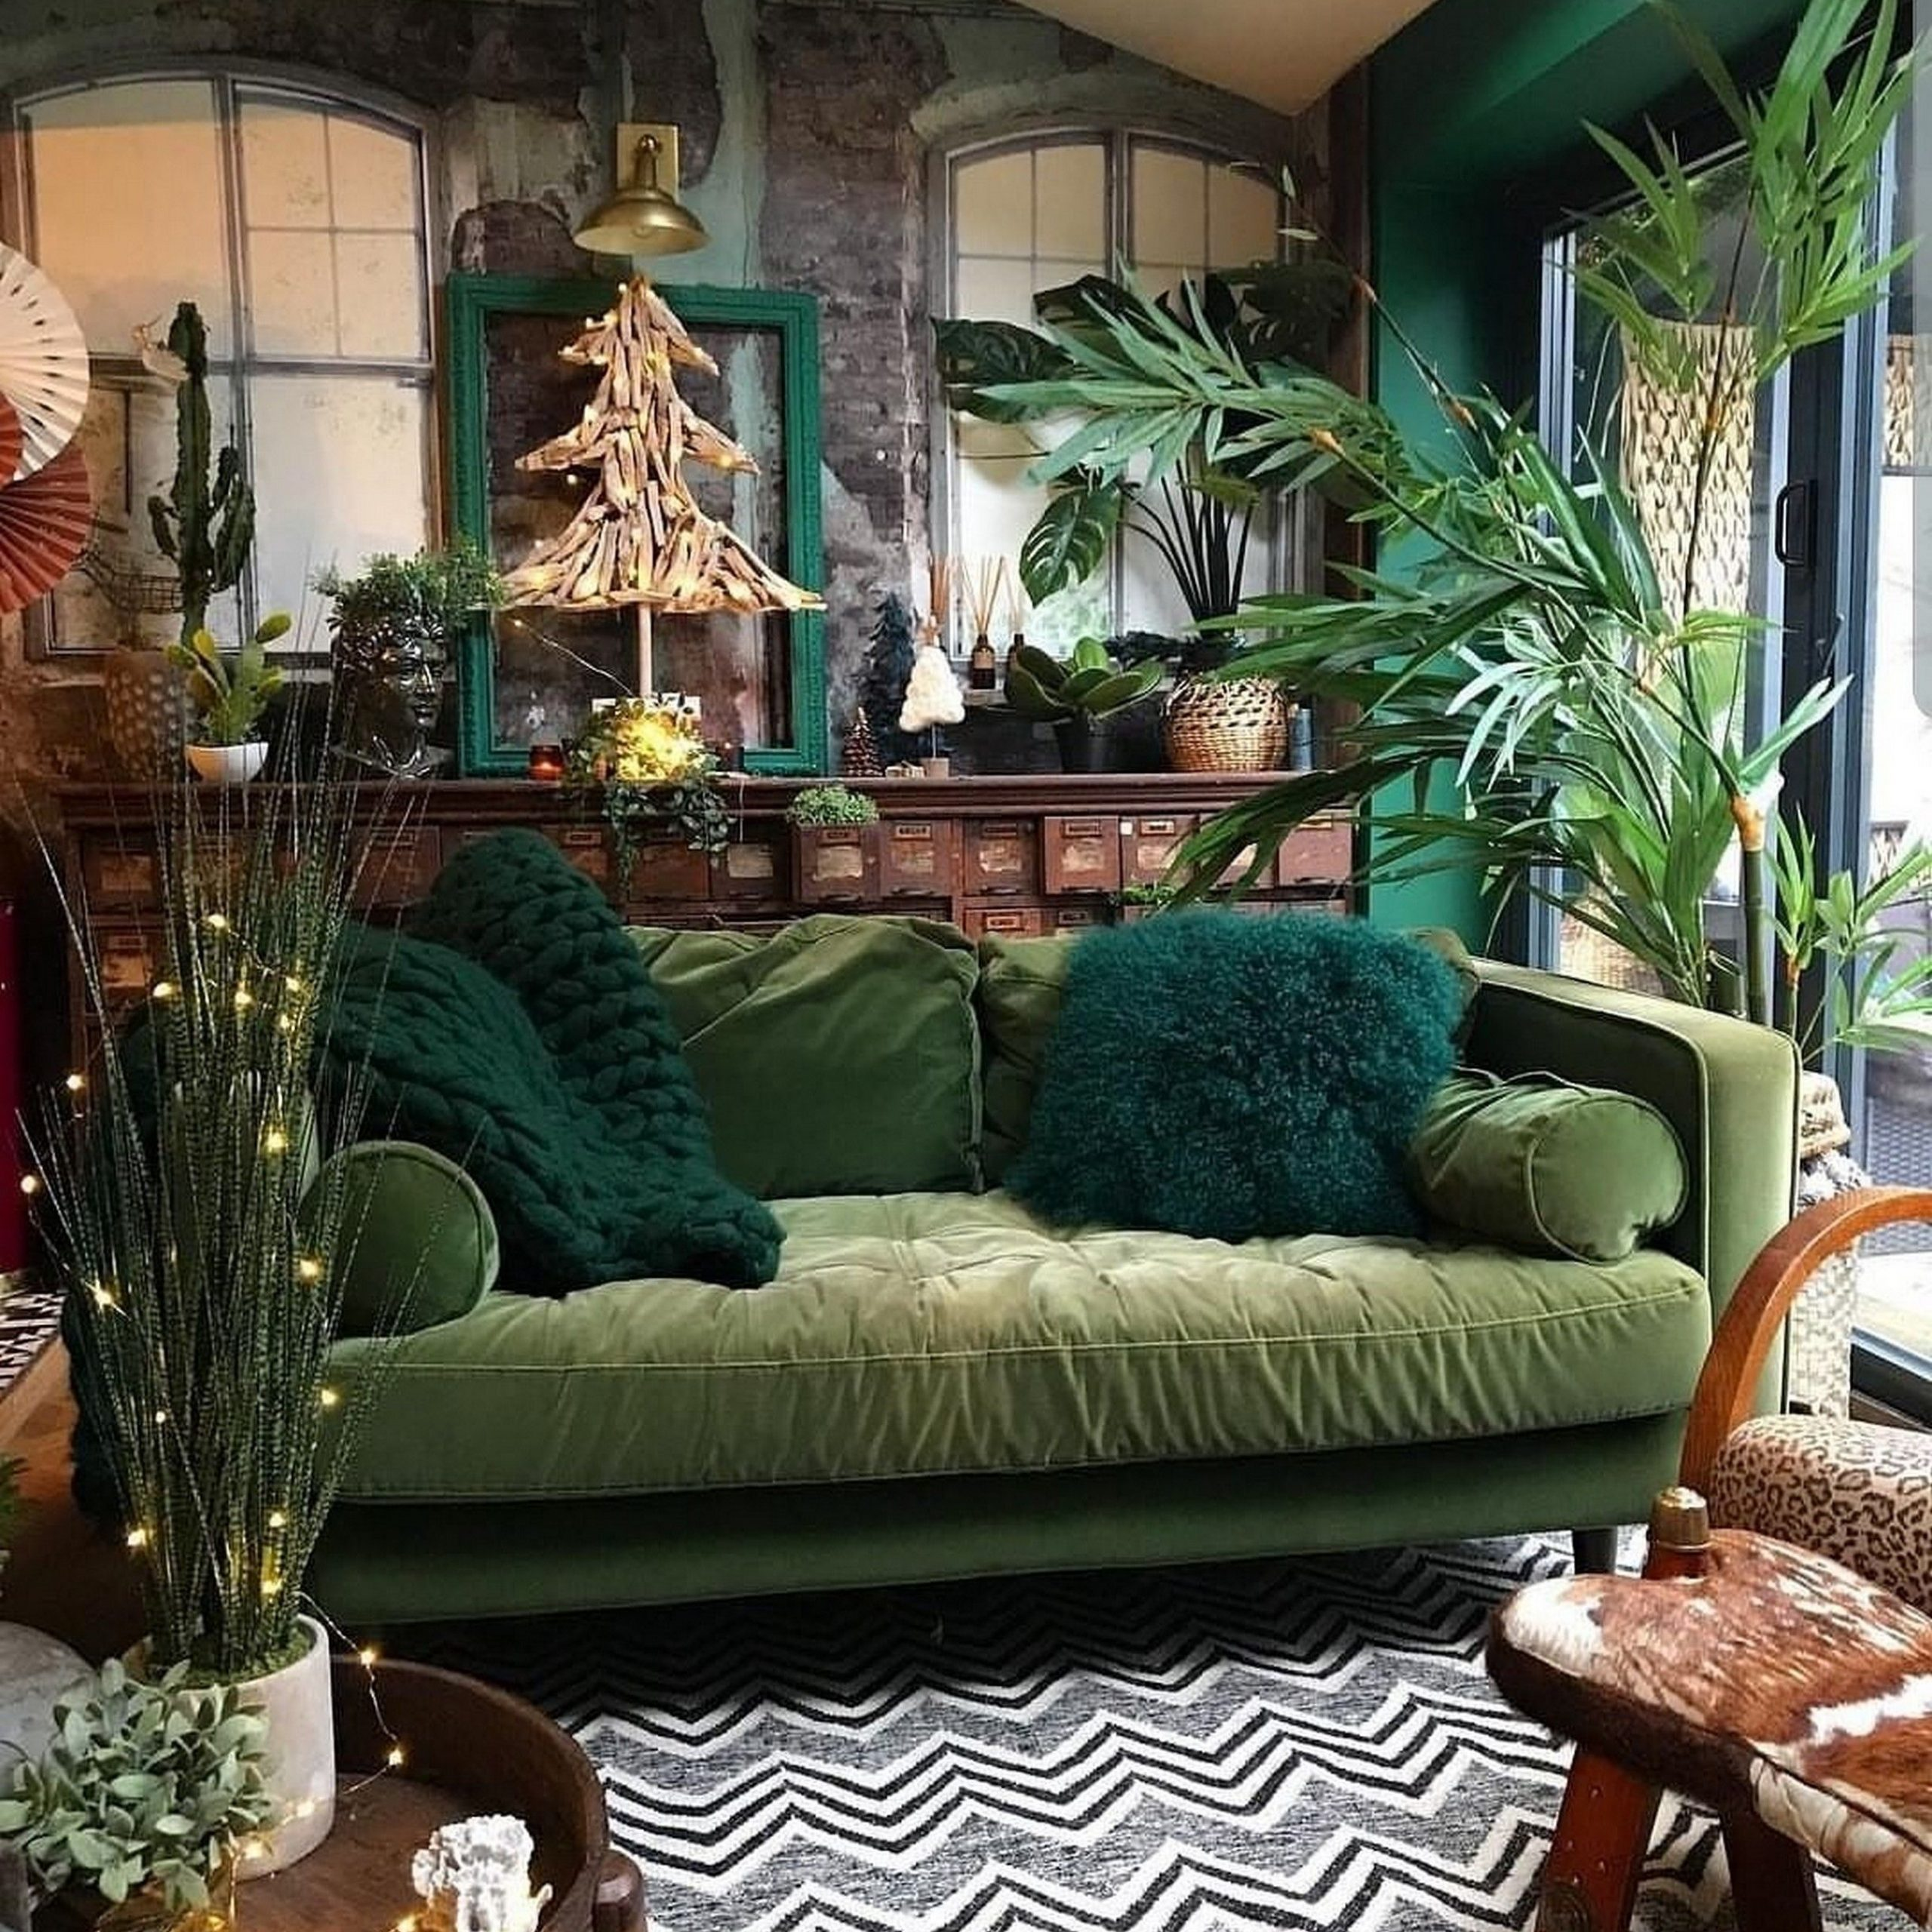 Comely Boho Chic Room Ideas Living Room On Breathtaking Bohemian Style Home Decor with Latest Design On Boho Chic Room Ideas Living Room